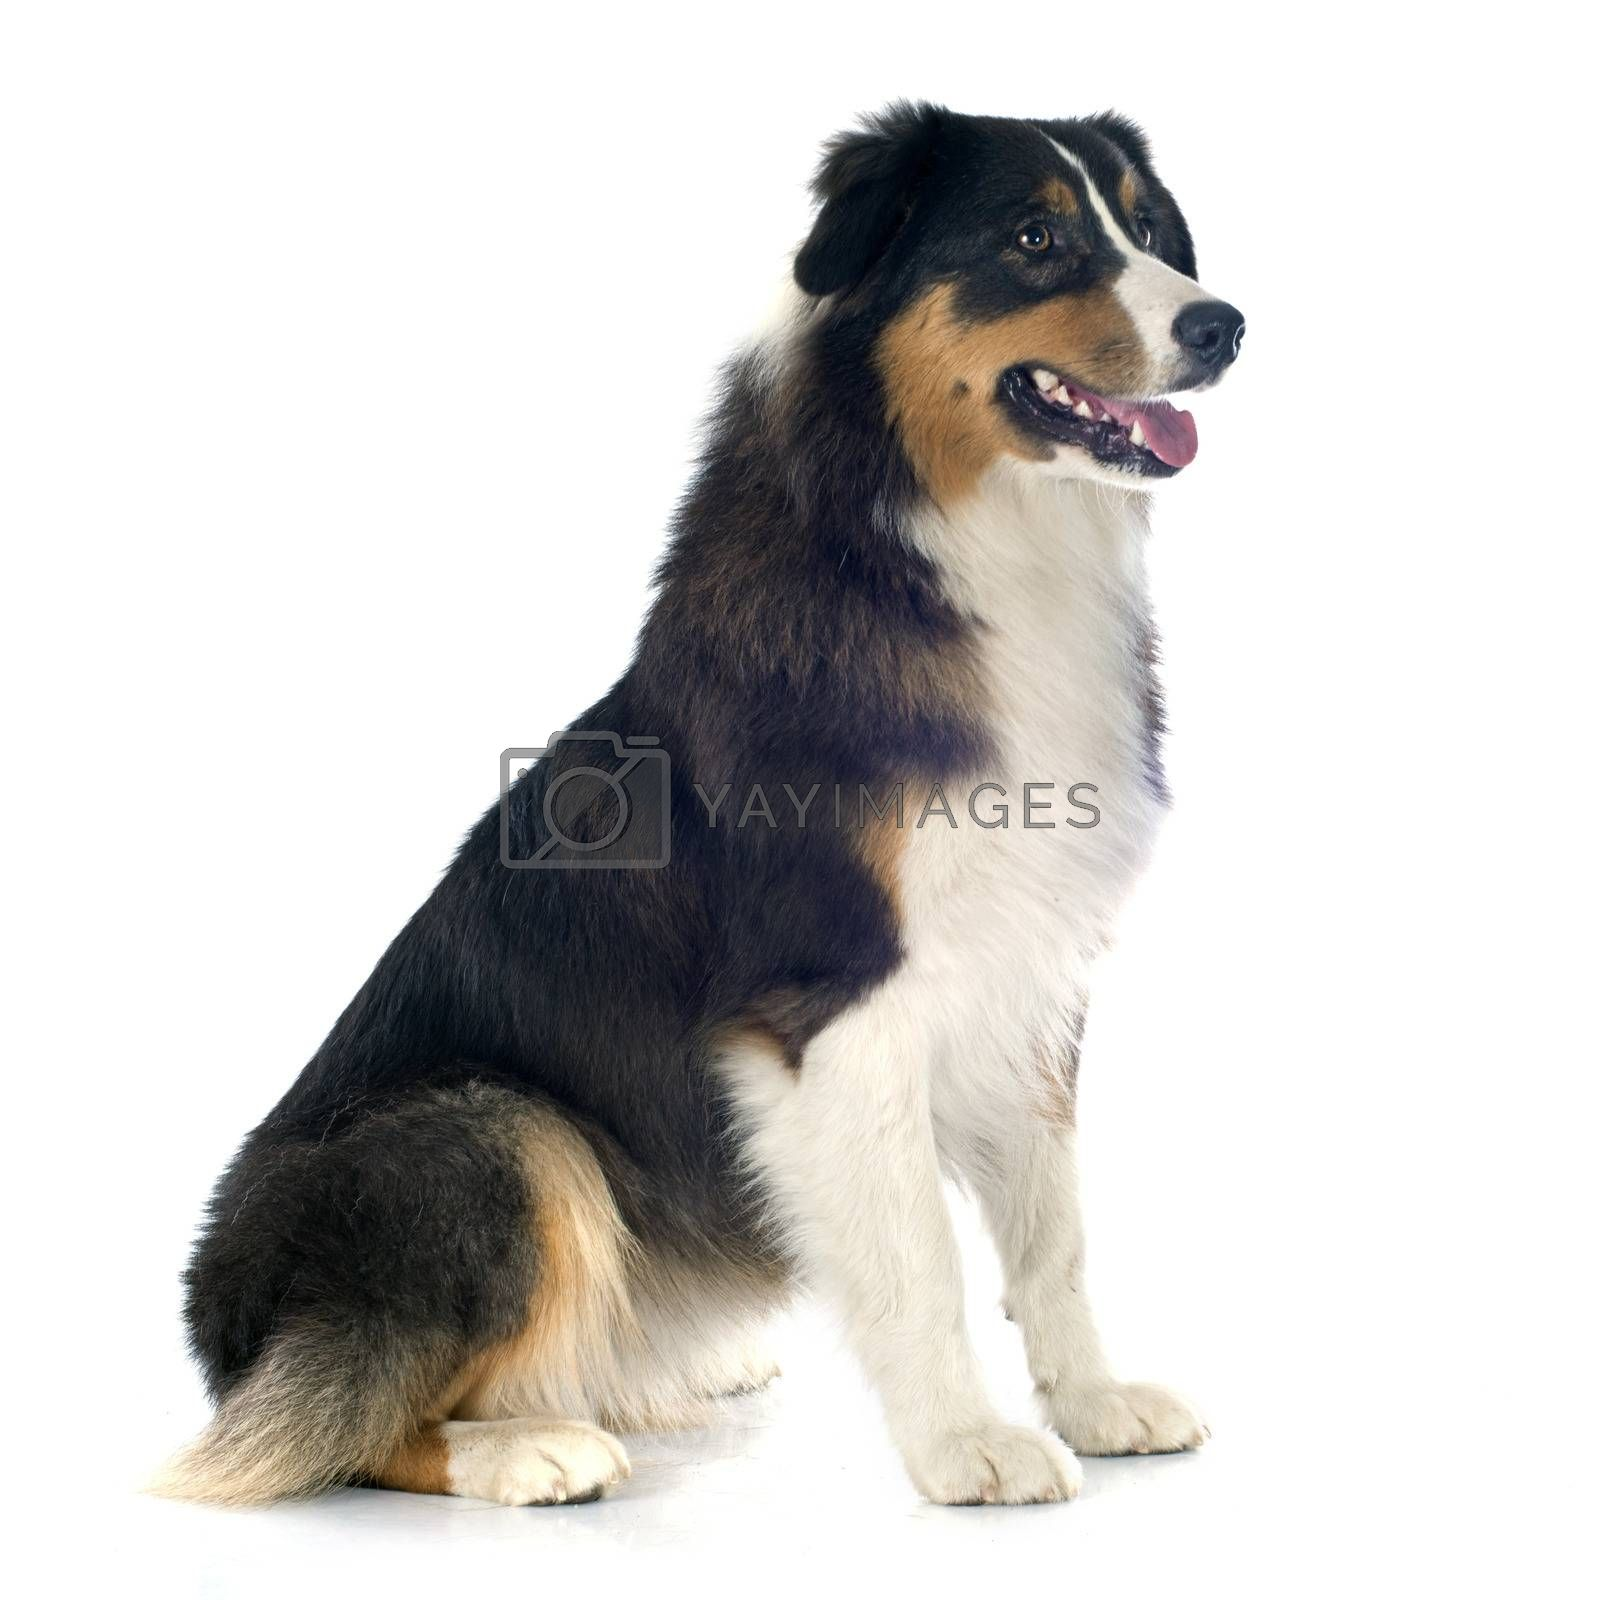 Royalty free image of australian shepherd by cynoclub